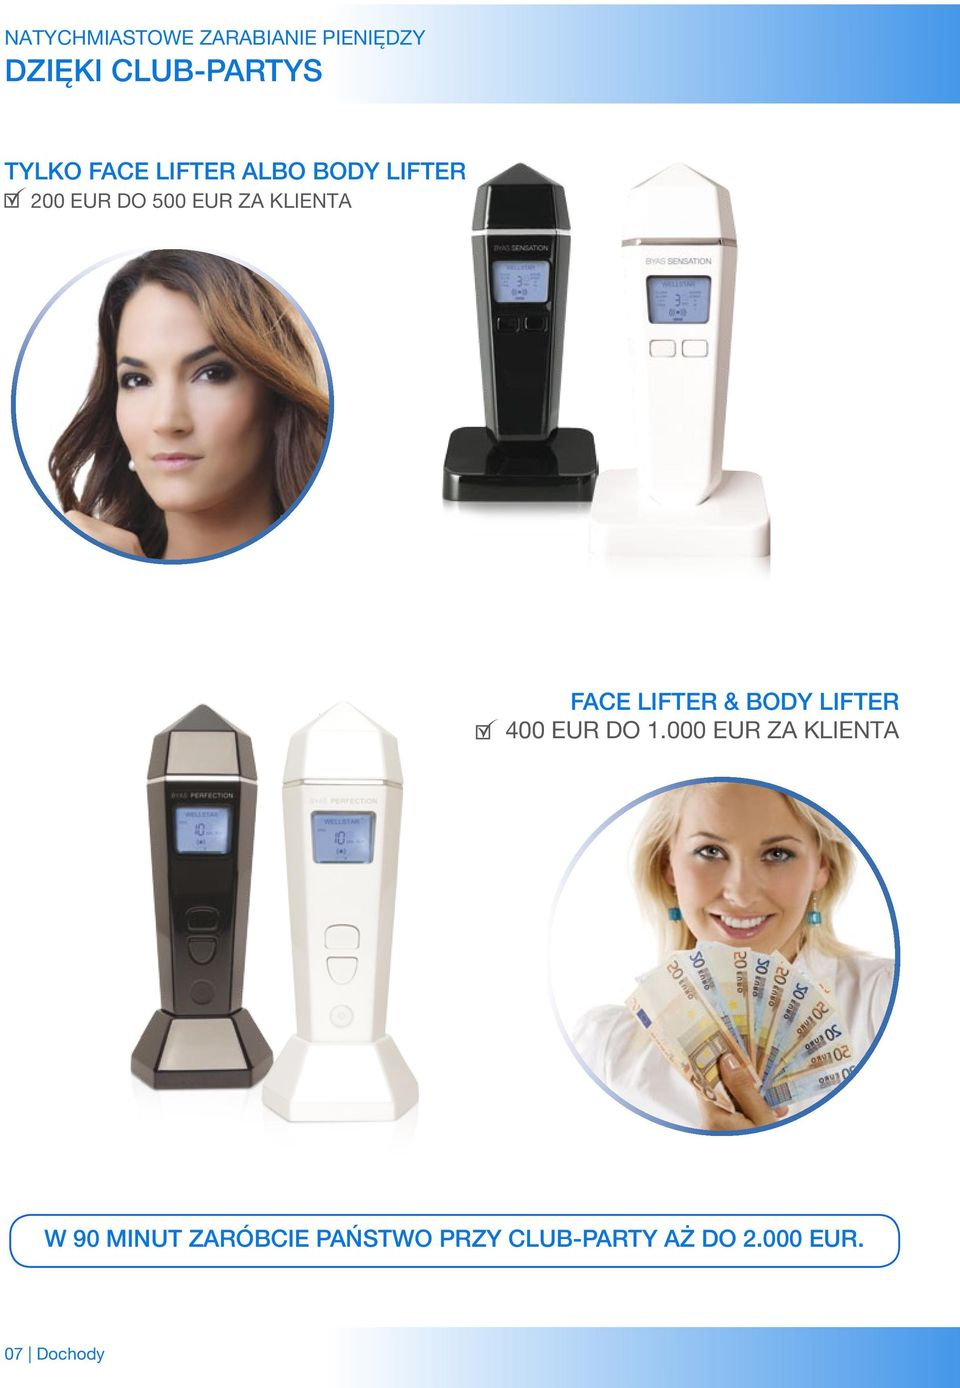 Face Lifter & Body Lifter 400 EUR do 1.